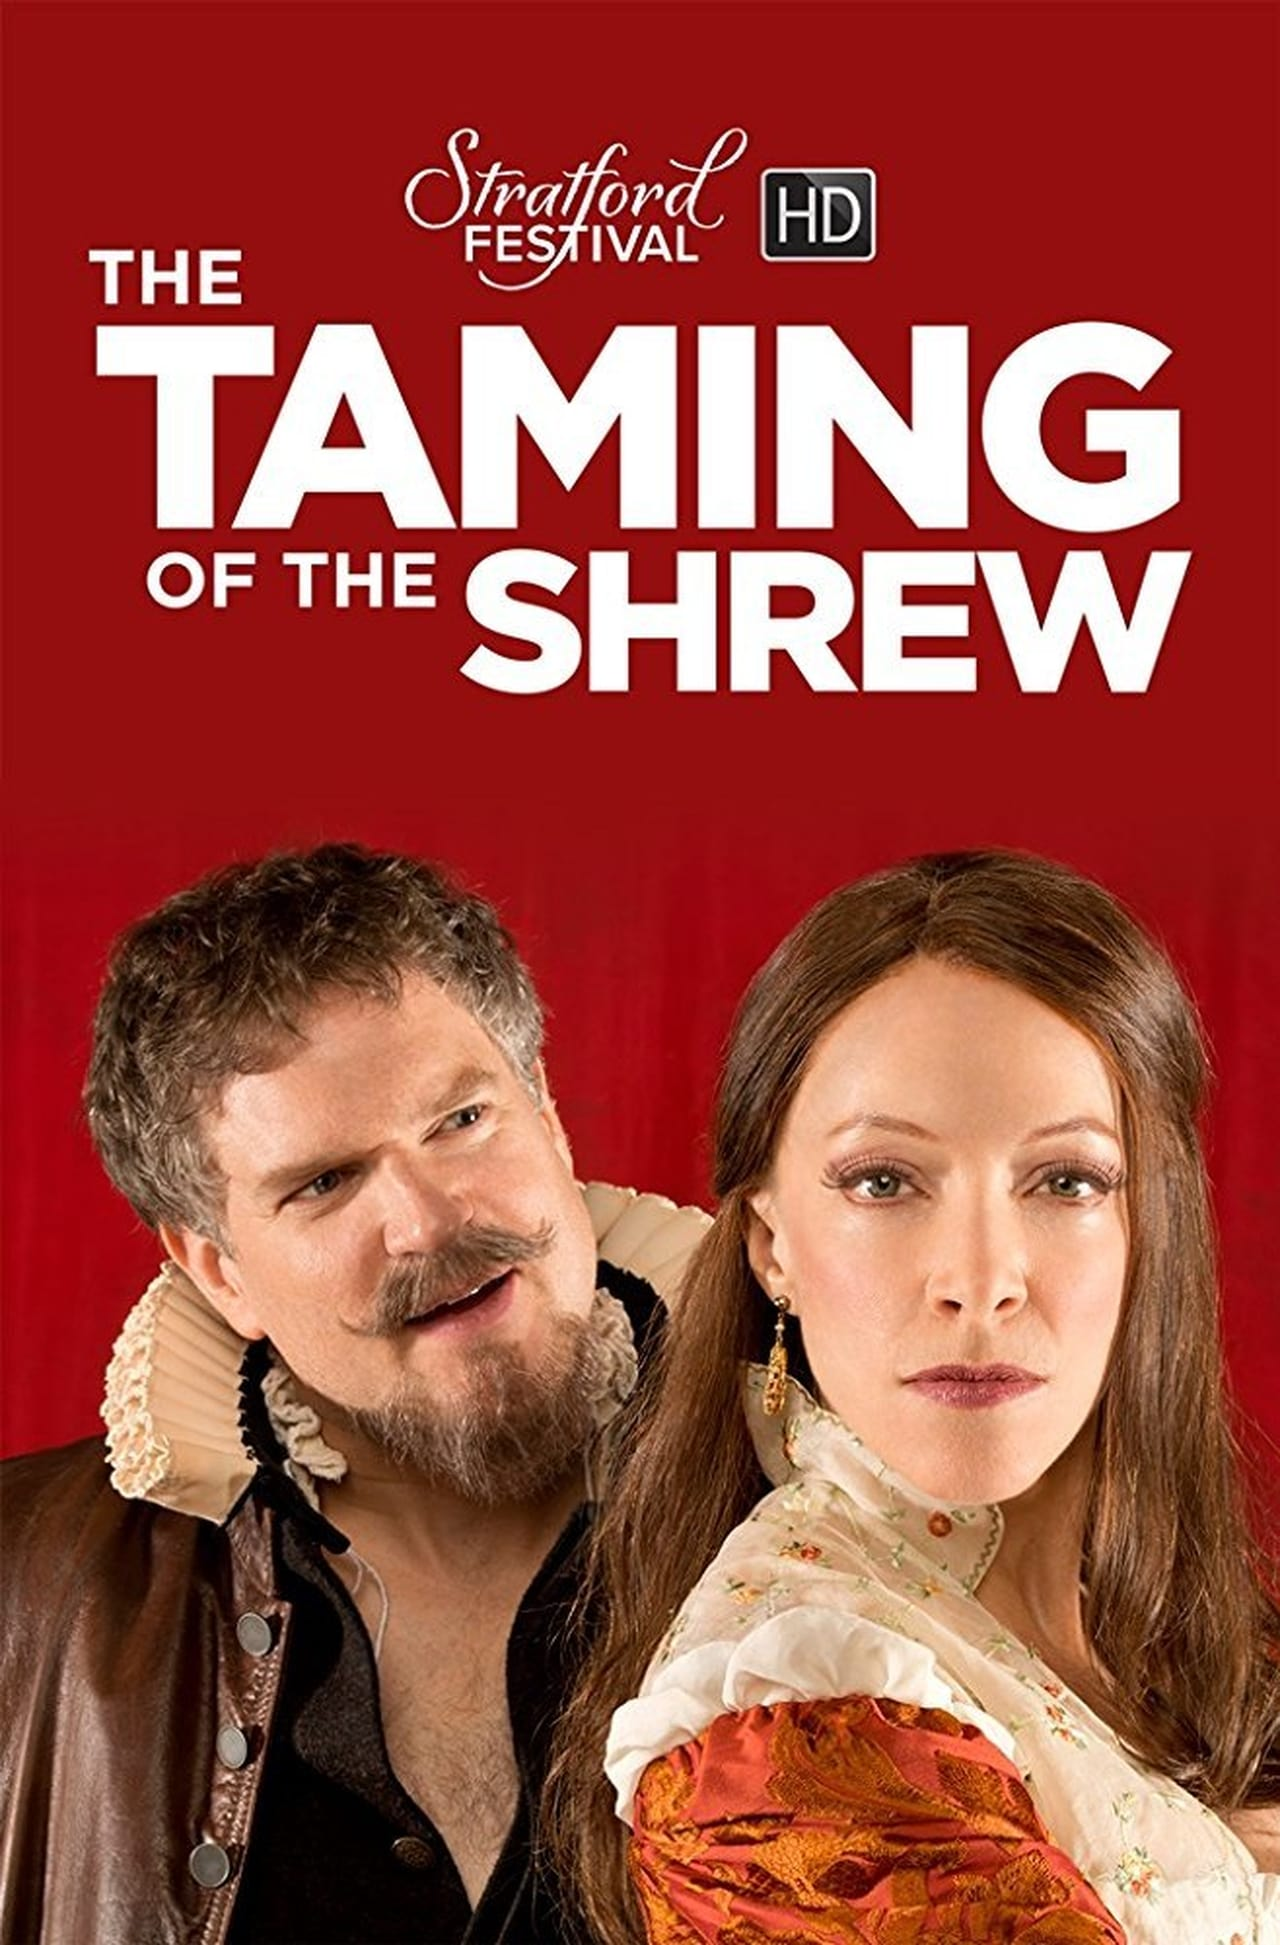 The Taming of the Shrew - Stratford Festival of Canada